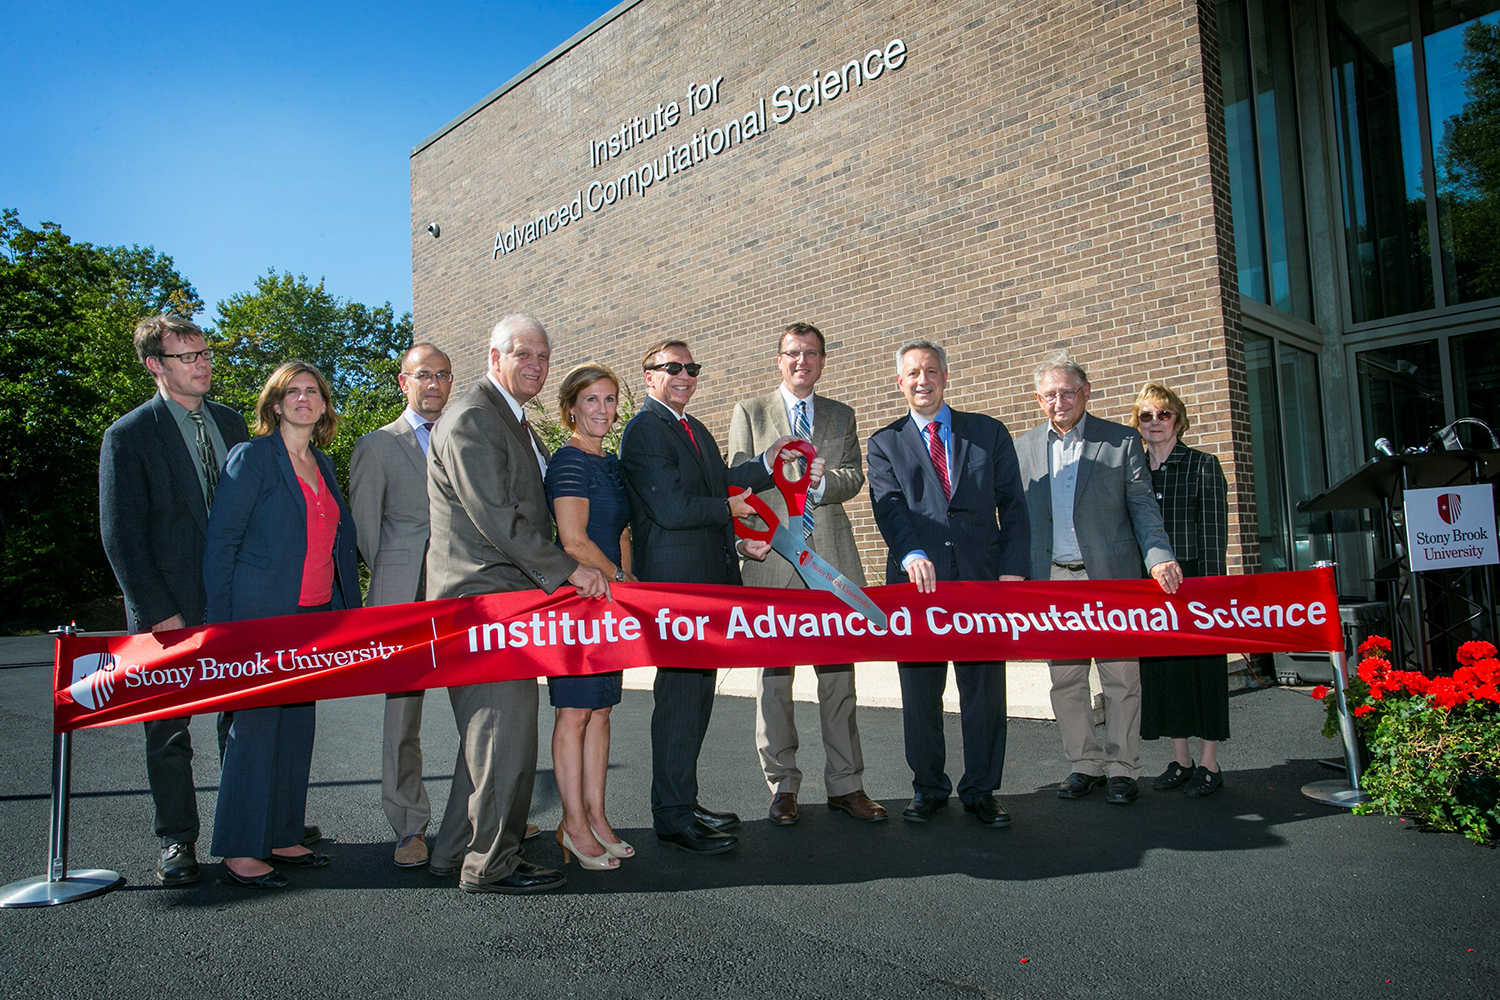 Stony Brook University held a grand opening for the Institute for Advanced Computational Science (IACS). Cutting the ribbon, in center, are Samuel L. Stanley Jr., MD, Stony Brook University President, and Robert Harrison, IACS Director. Also pictured, from left: Alan Calder, Mary Hall, Wolfgang Wander, Steve Englebright, Lynn Allopenna, Dennis Assanis, Peter Paul, and Margaret Wright.